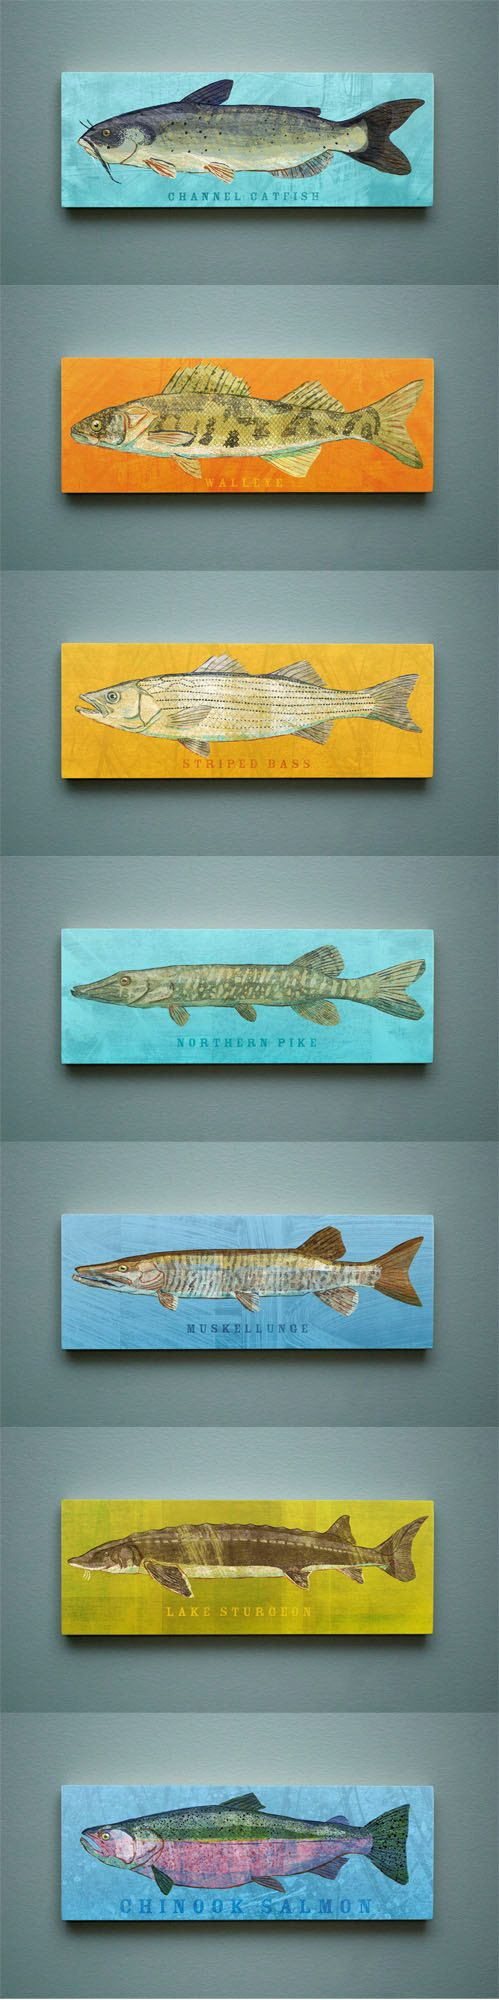 Freshwater Fish Art Series Large Art Block - Pick the Print - 4 in x 11 in Fish Wall Decor Fisherman Gift - Fathers Day Gift for Dad on Etsy, $24.00